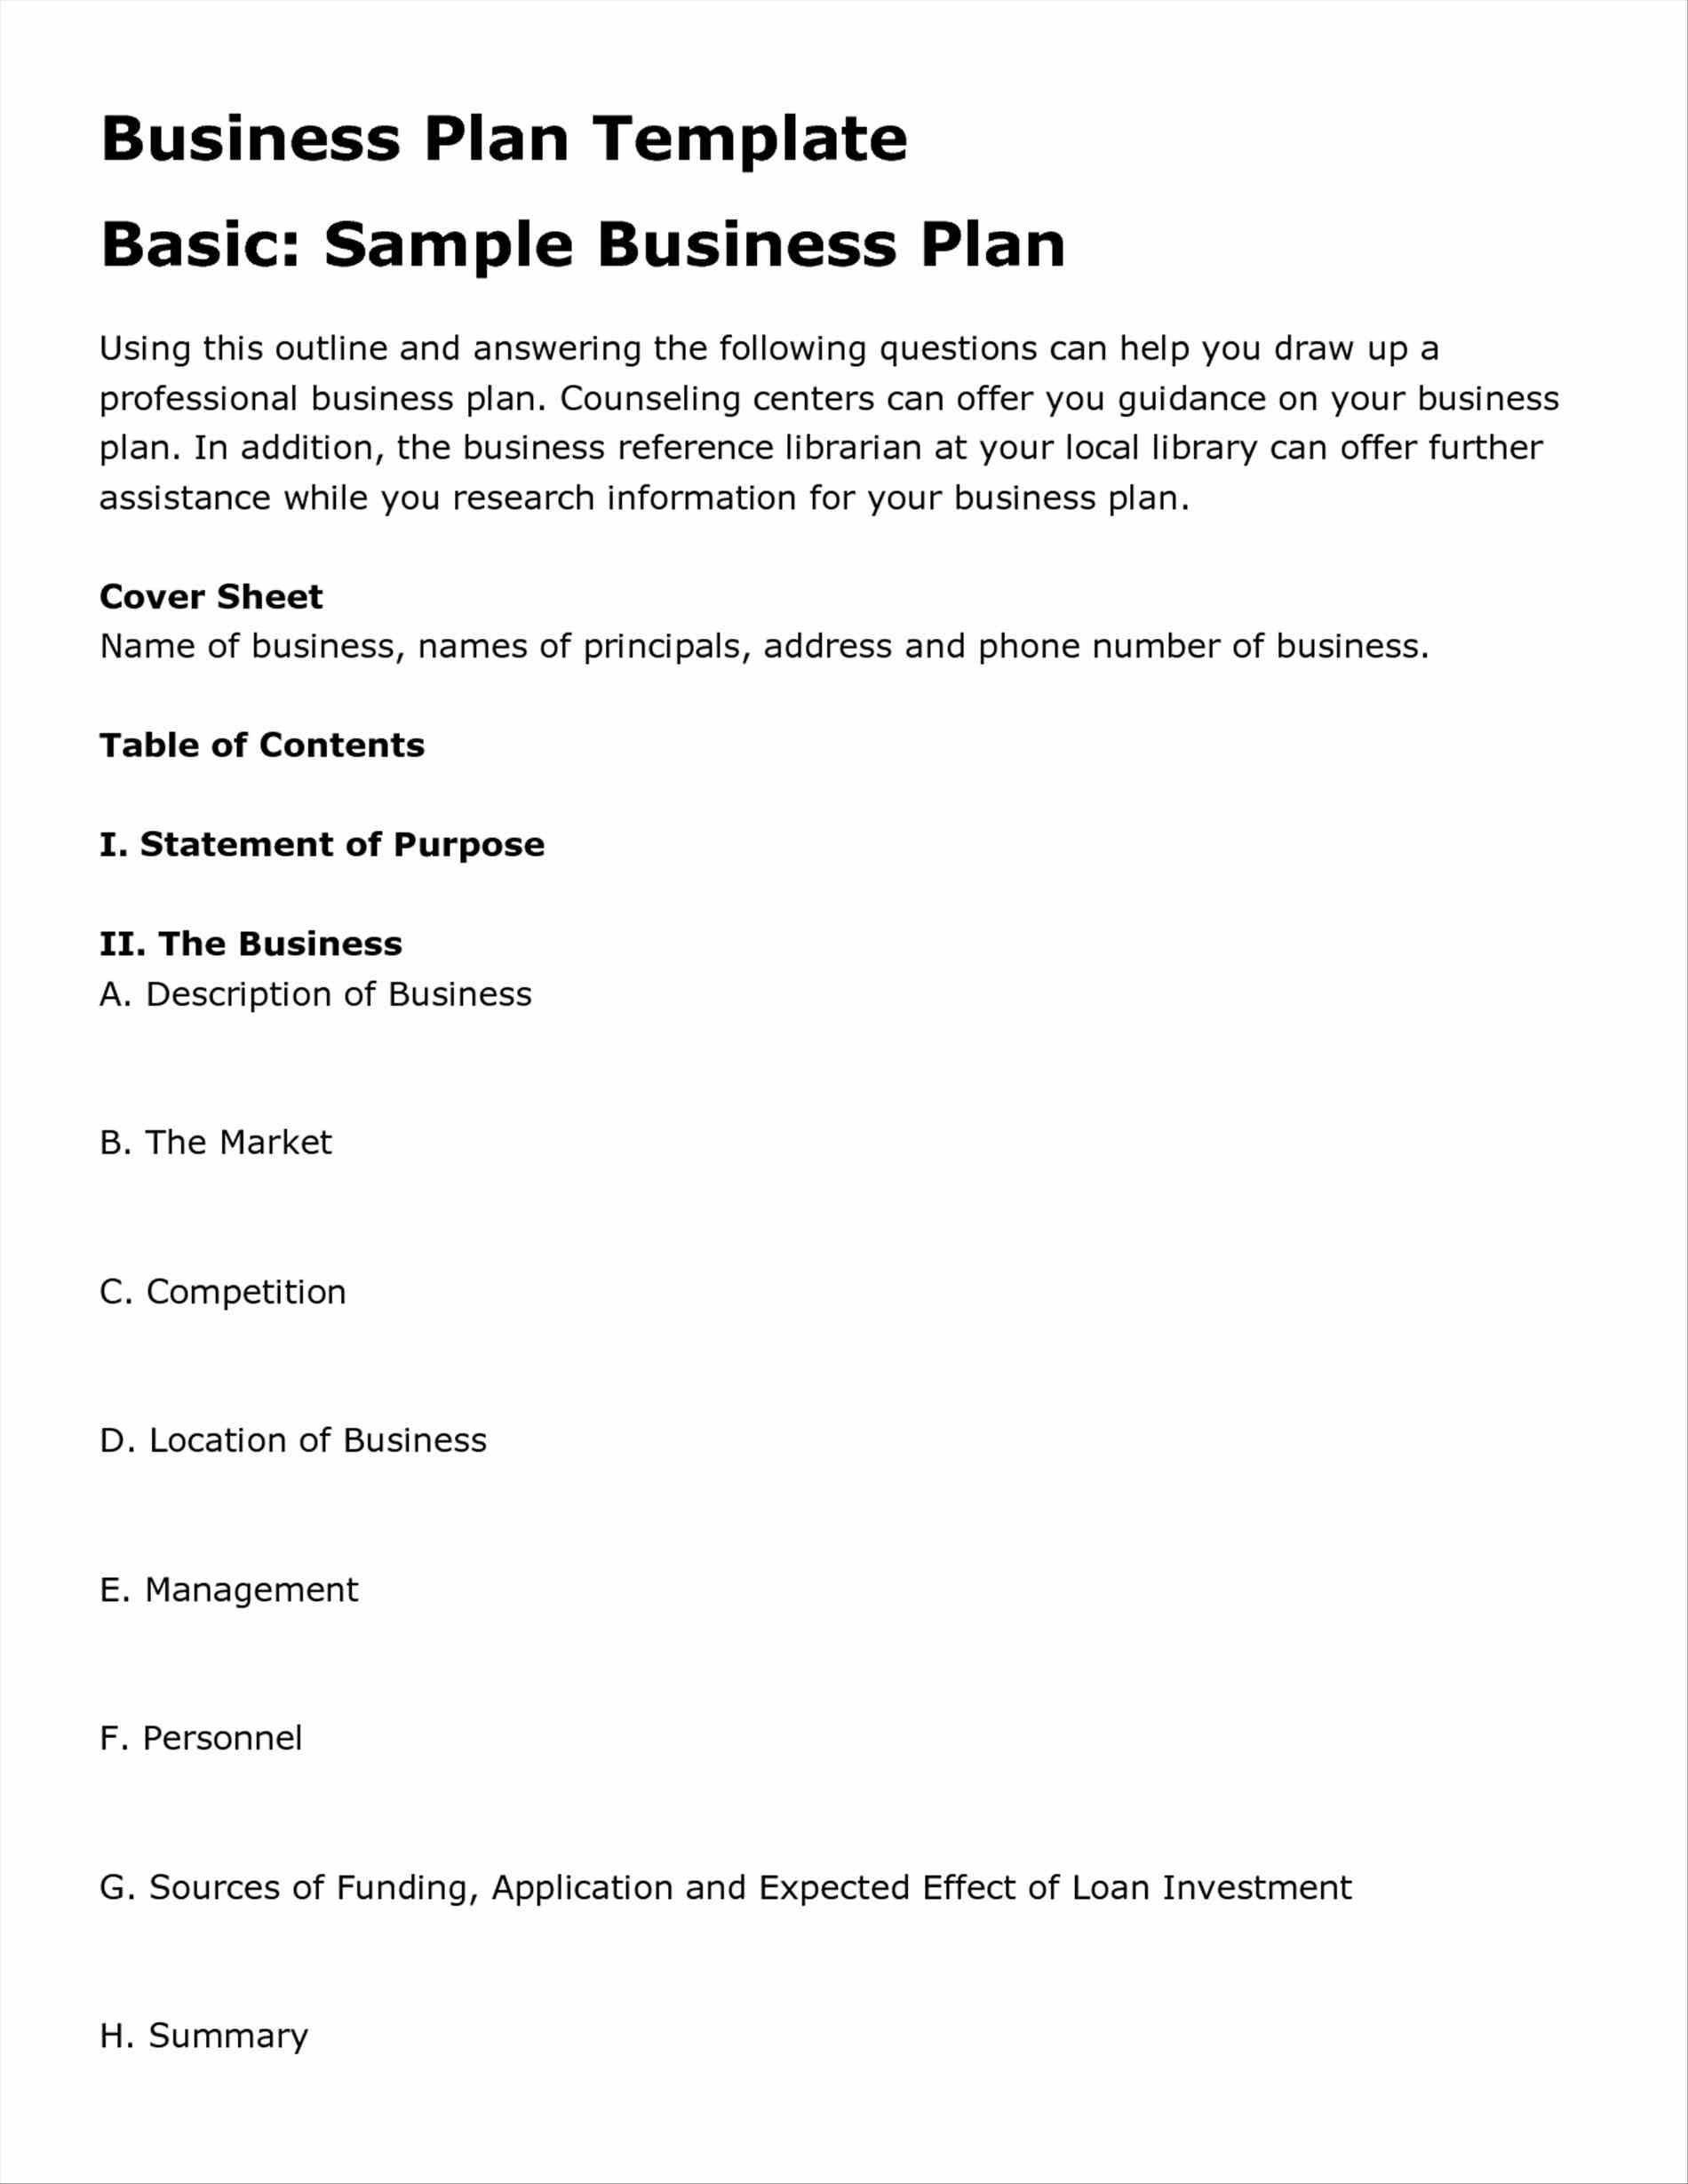 Business plan template restaurant templates in word excel pdf free business plan template restaurant templates in word excel pdf free cafe business plan template restaurant business plan templates in word excel accmission Gallery